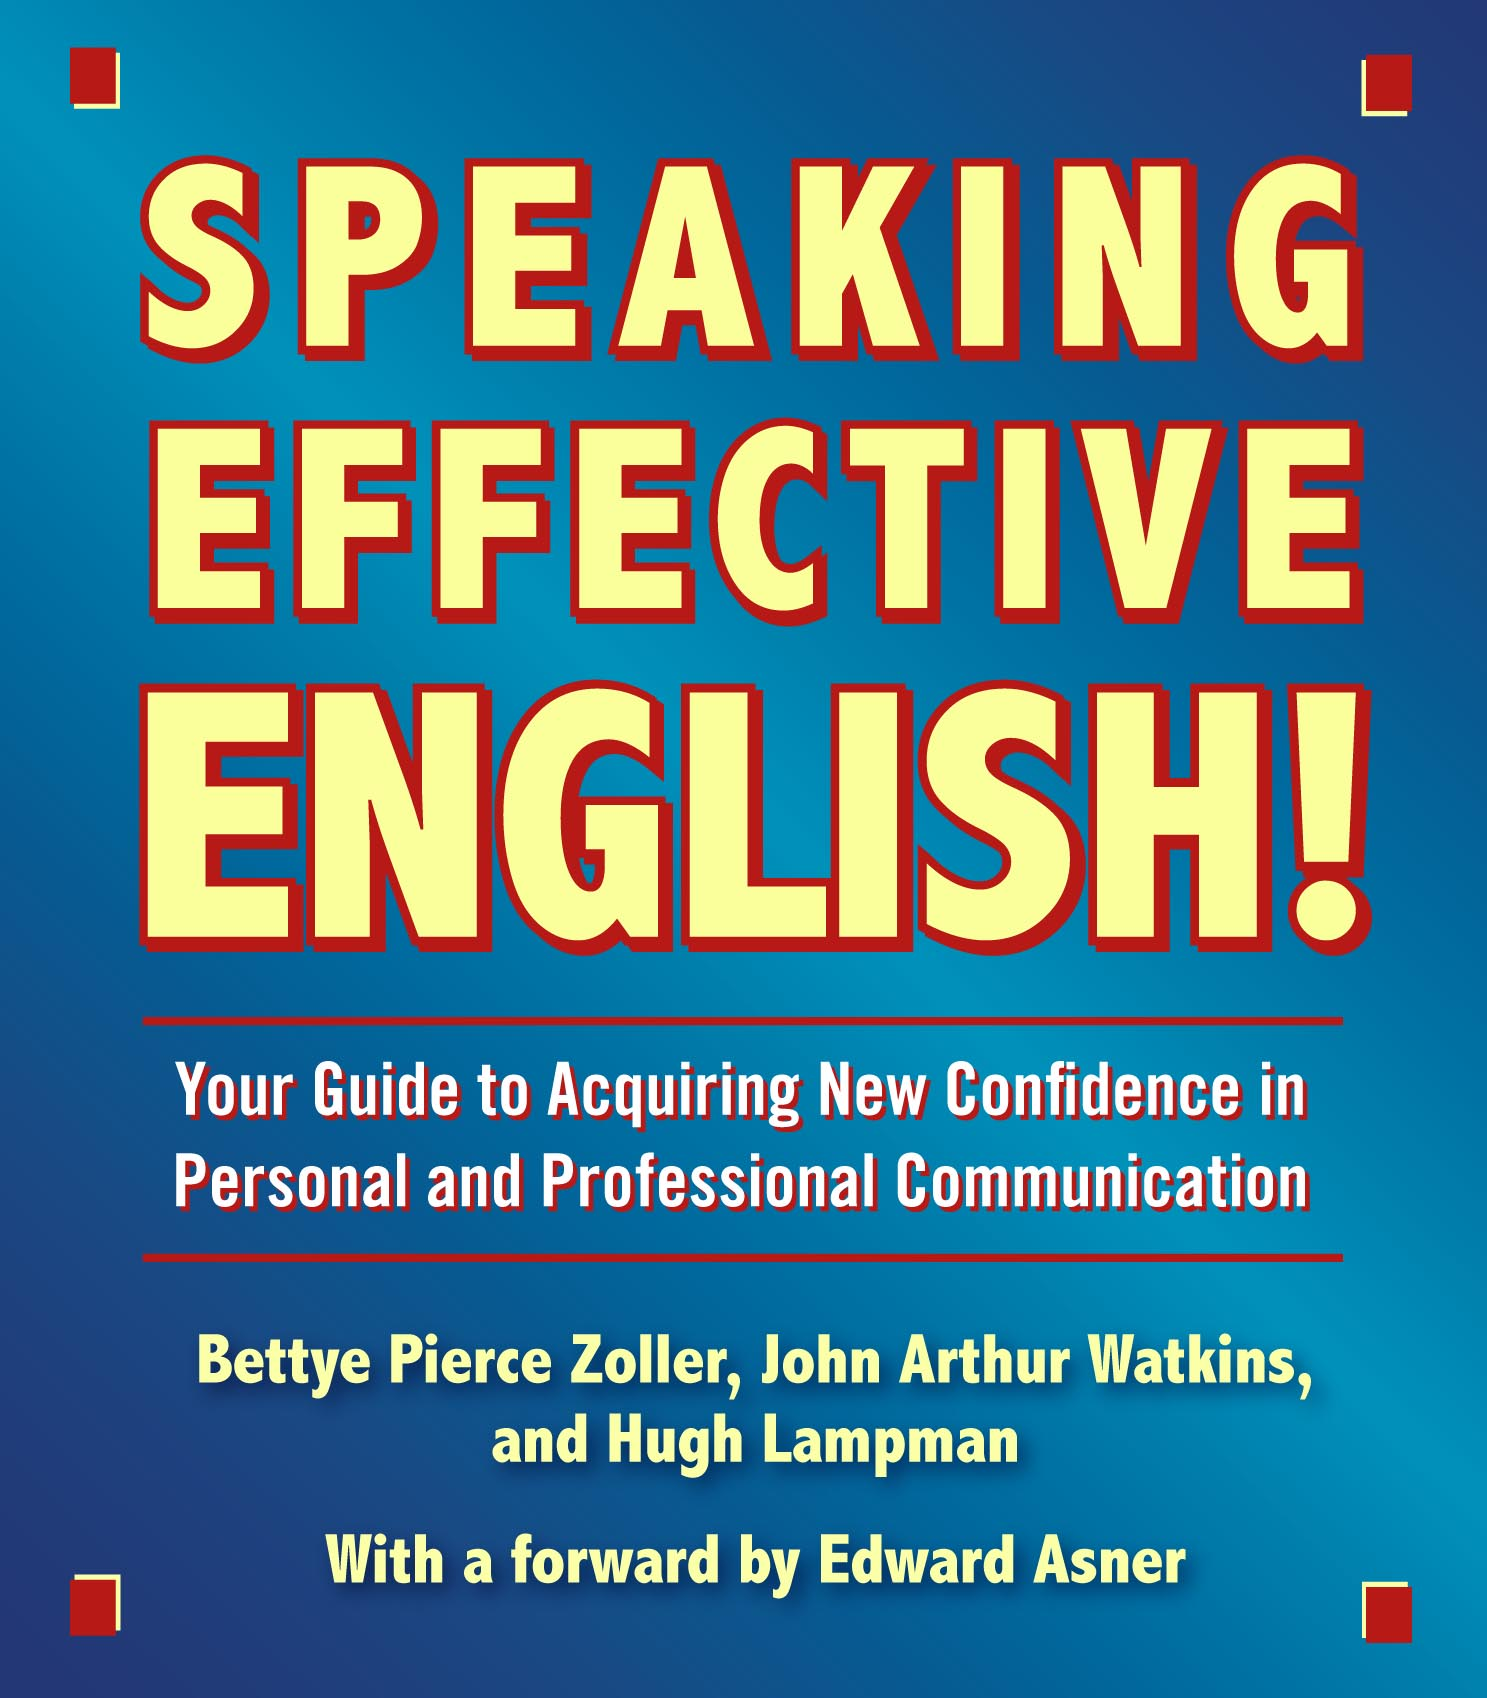 Speaking Effective English! Audiobook by John Arthur Watkins, Hugh